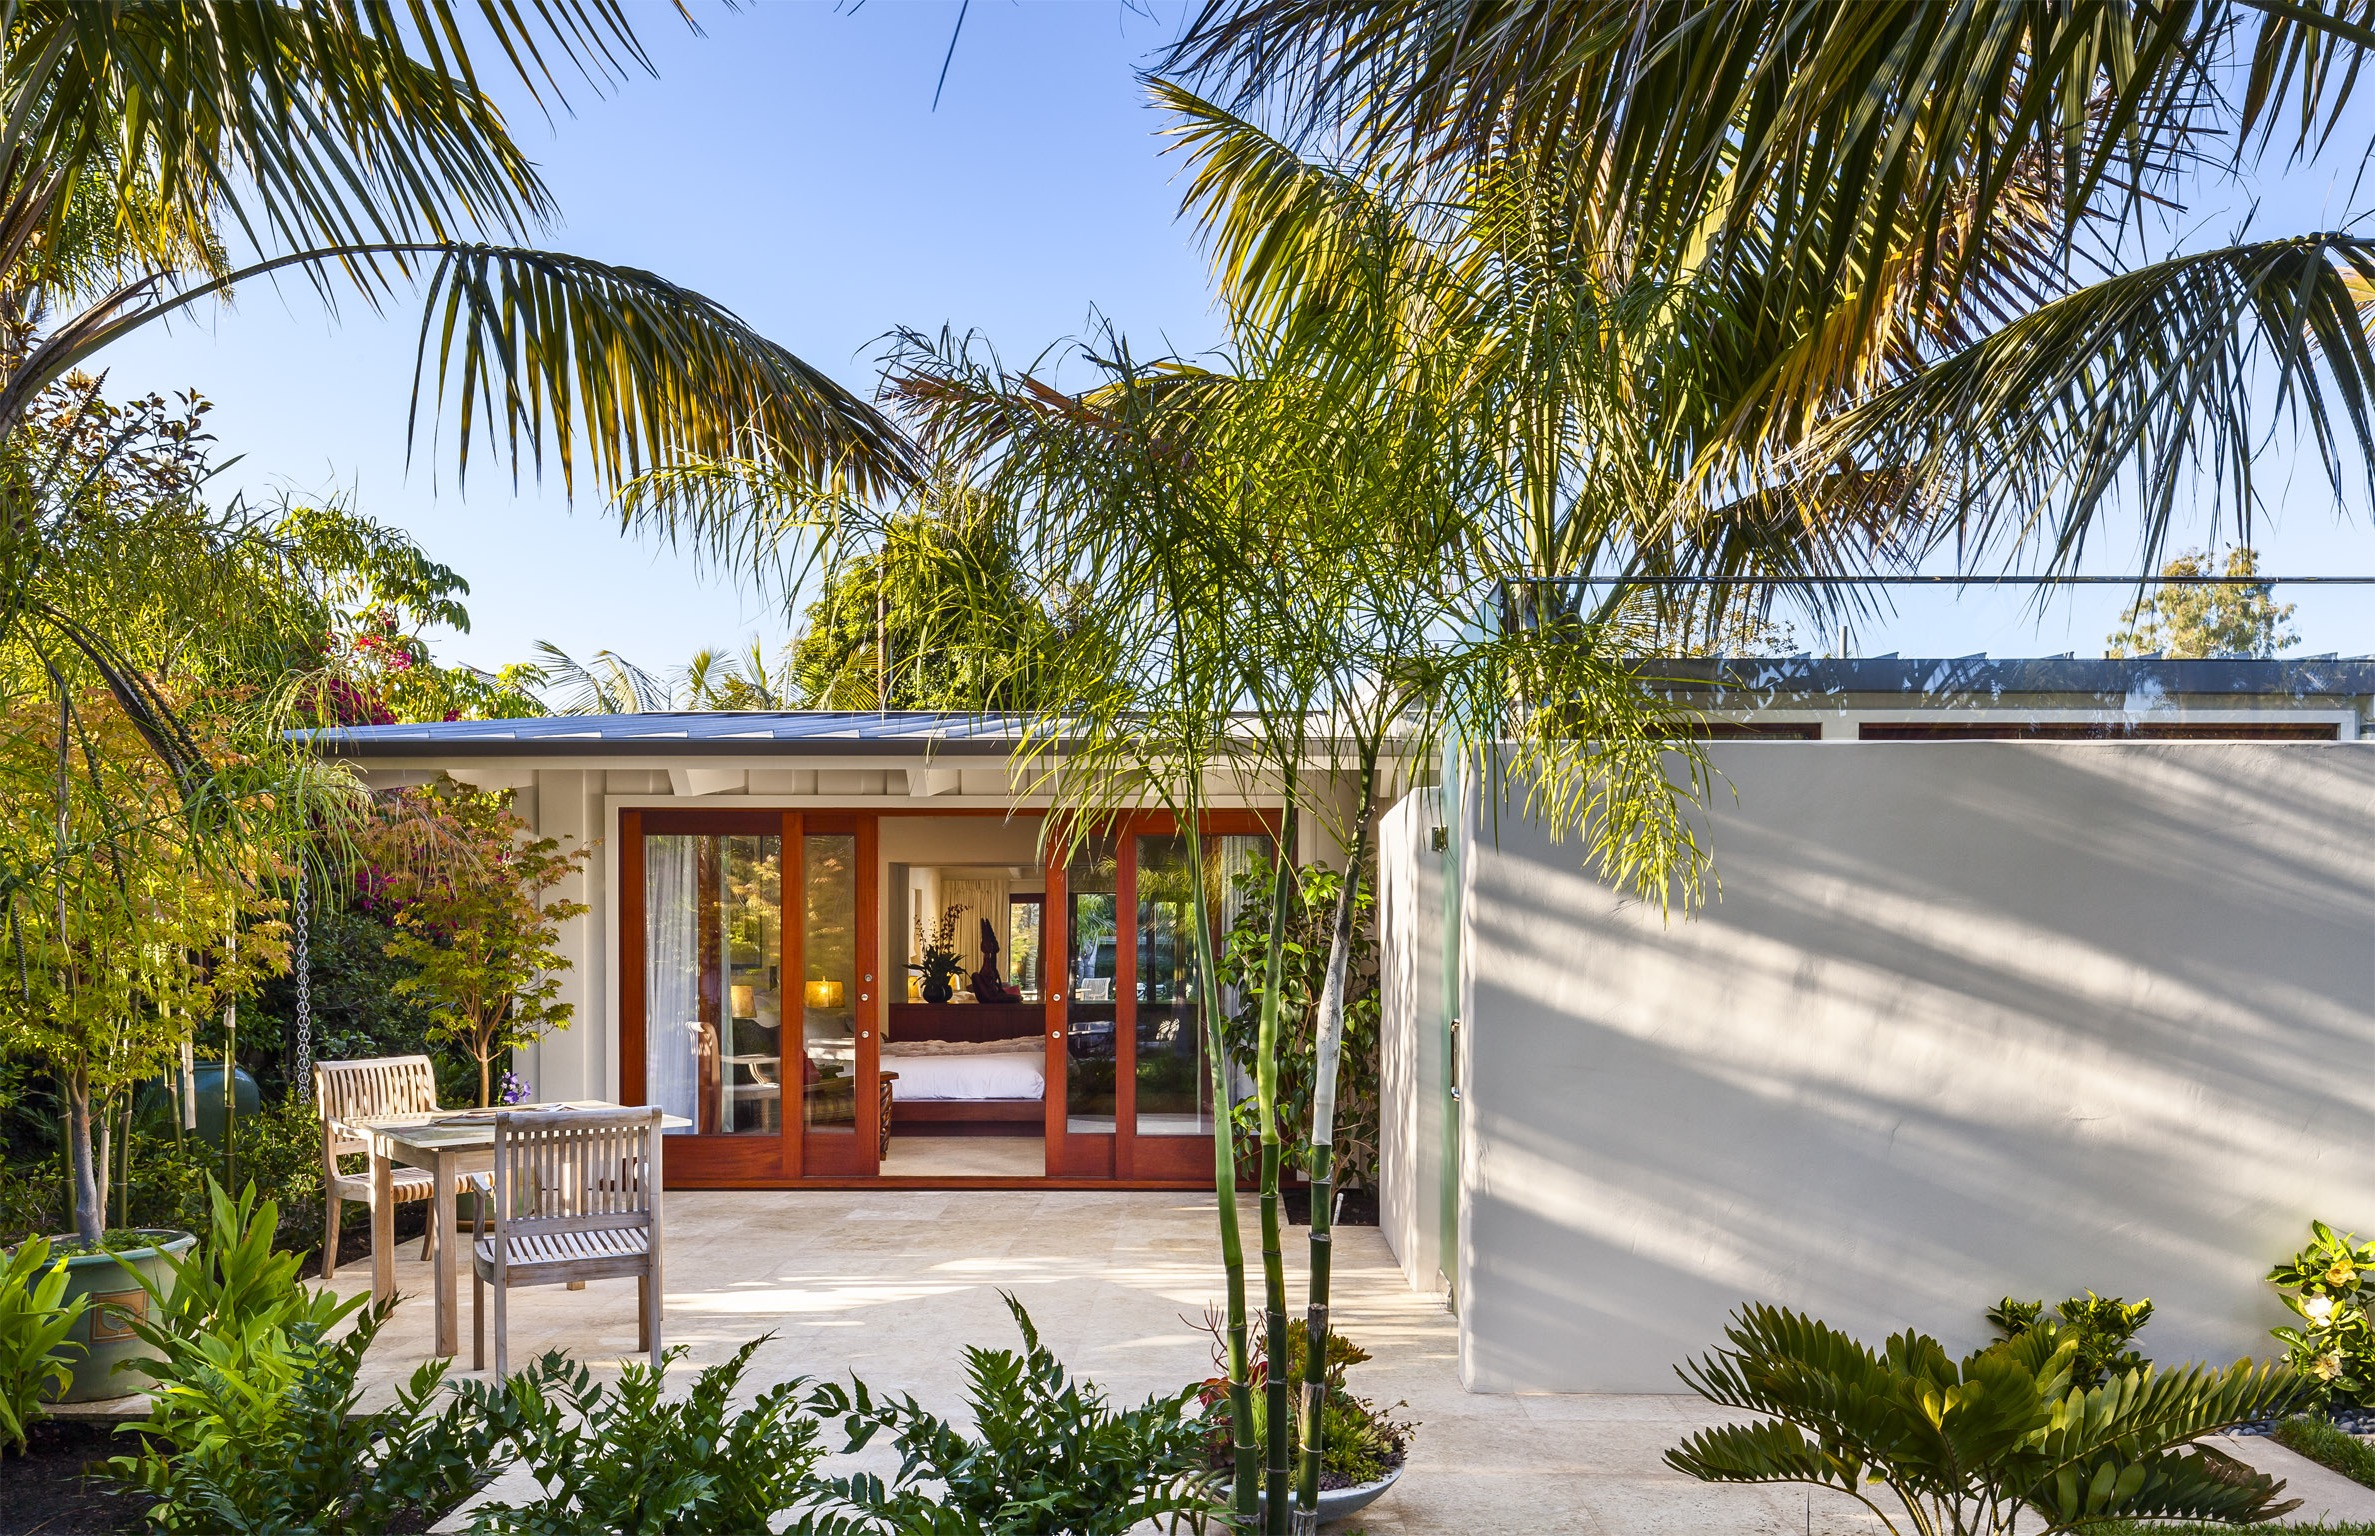 Modern Outdoor Patio With Tropical Landscaping (Image 14 of 30)